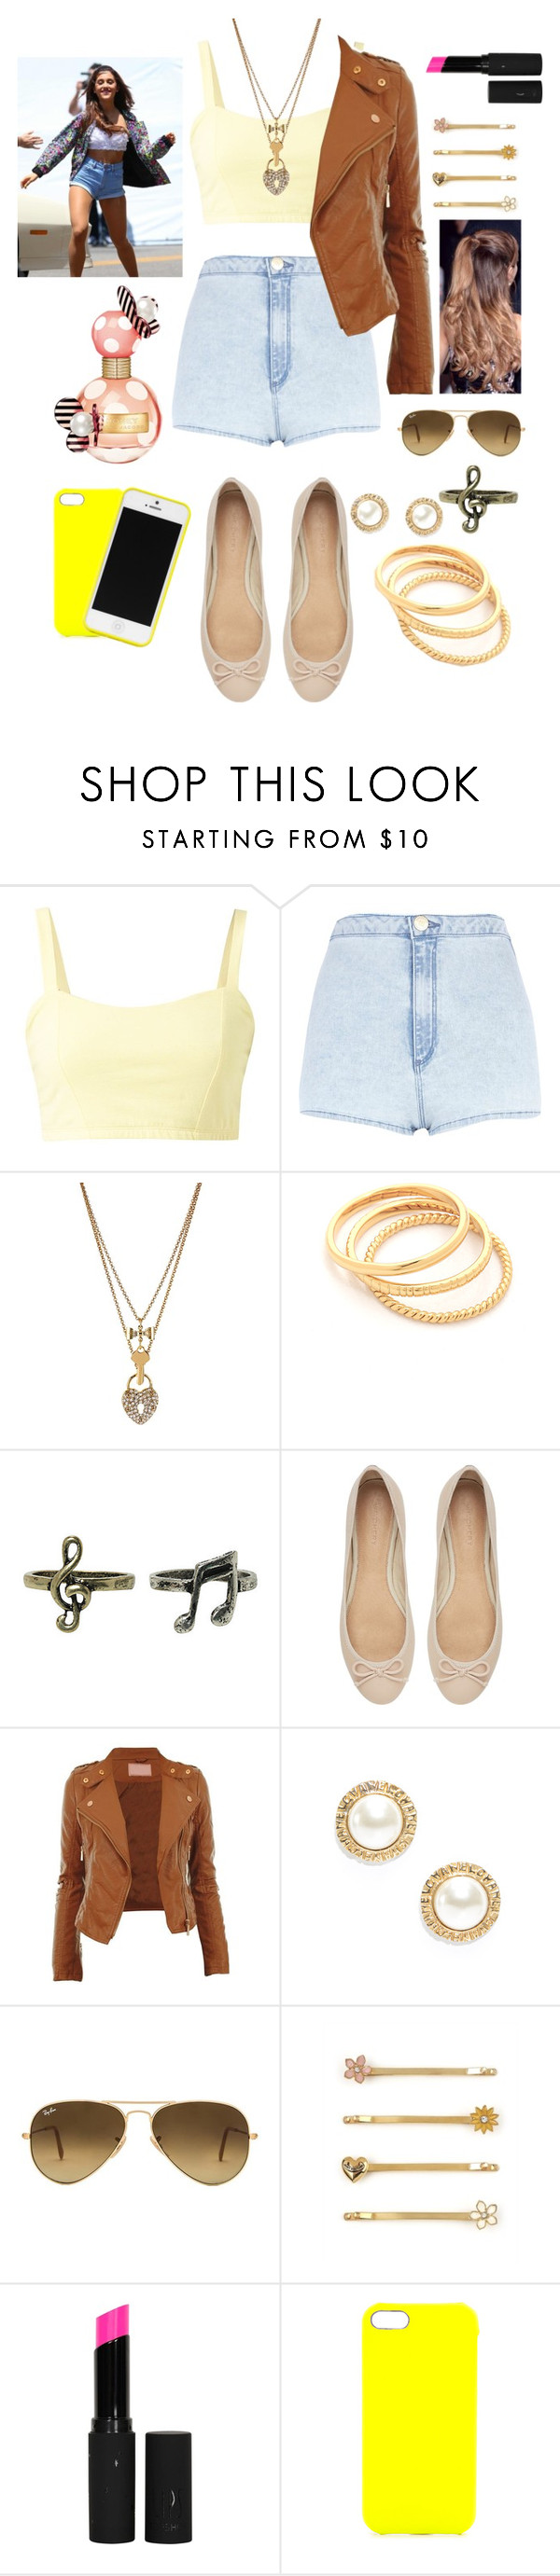 """Ariana Grande — Baby I"" by choosemaknae ❤ liked on Polyvore featuring River Island, Betsey Johnson, Gorjana, Witchery, Chanel, Ray-Ban, Juicy Couture, Topshop, Jagger Edge and Marc Jacobs"